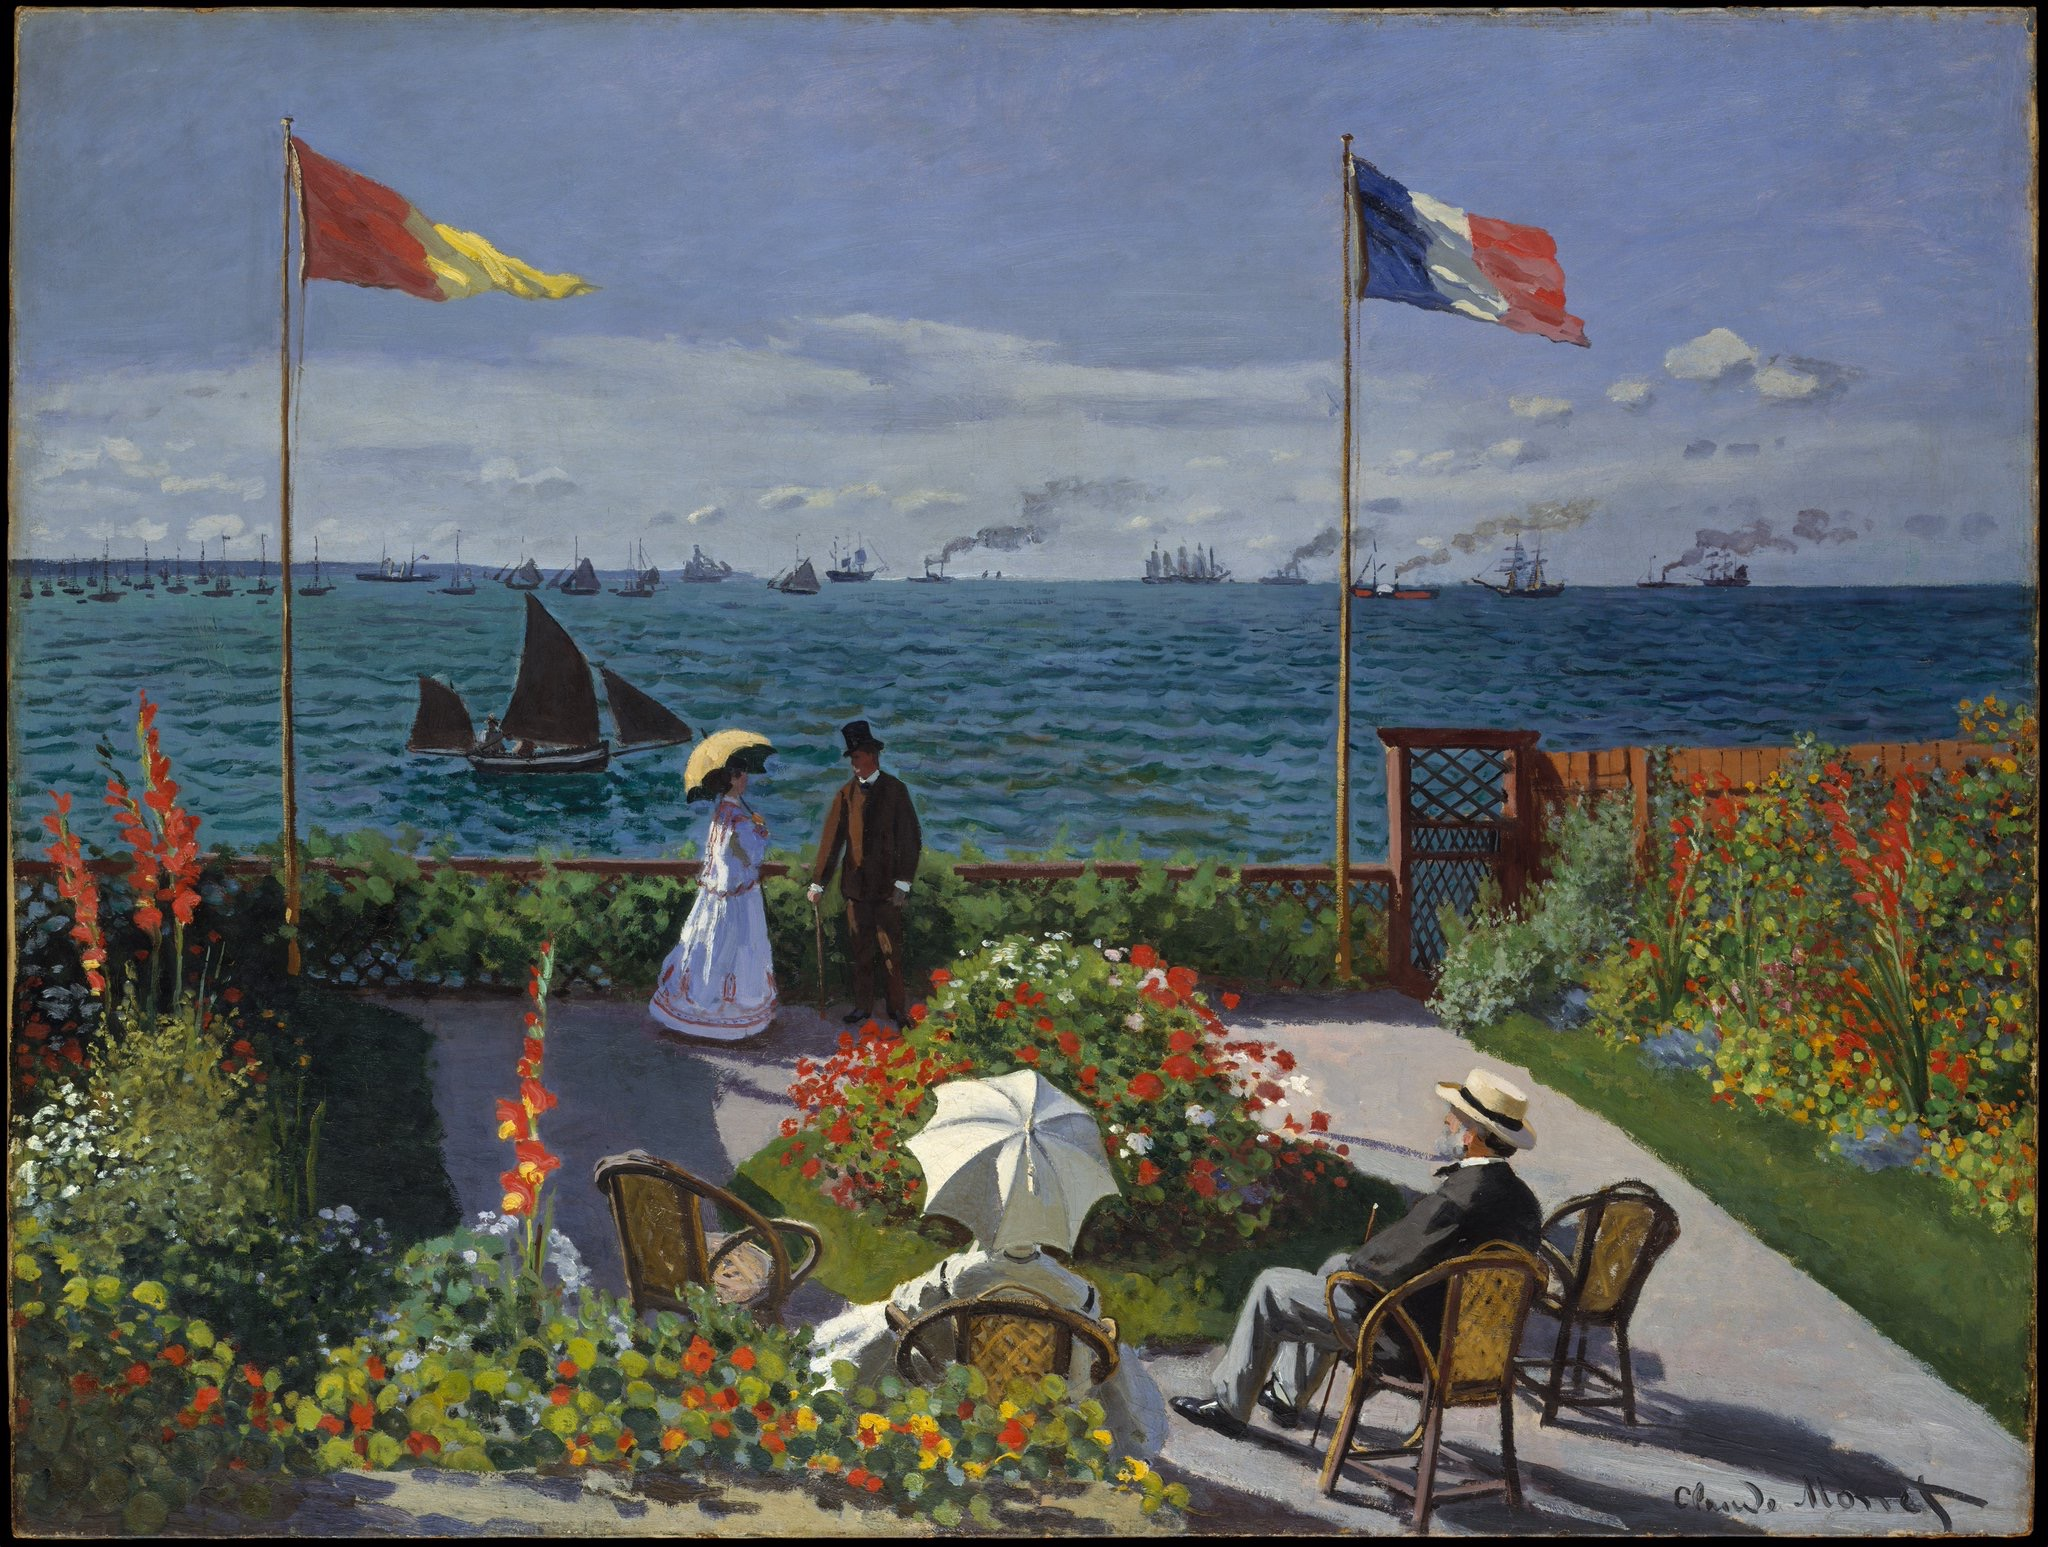 Garden at Sainte-Adresse, by Claude Monet, 1867